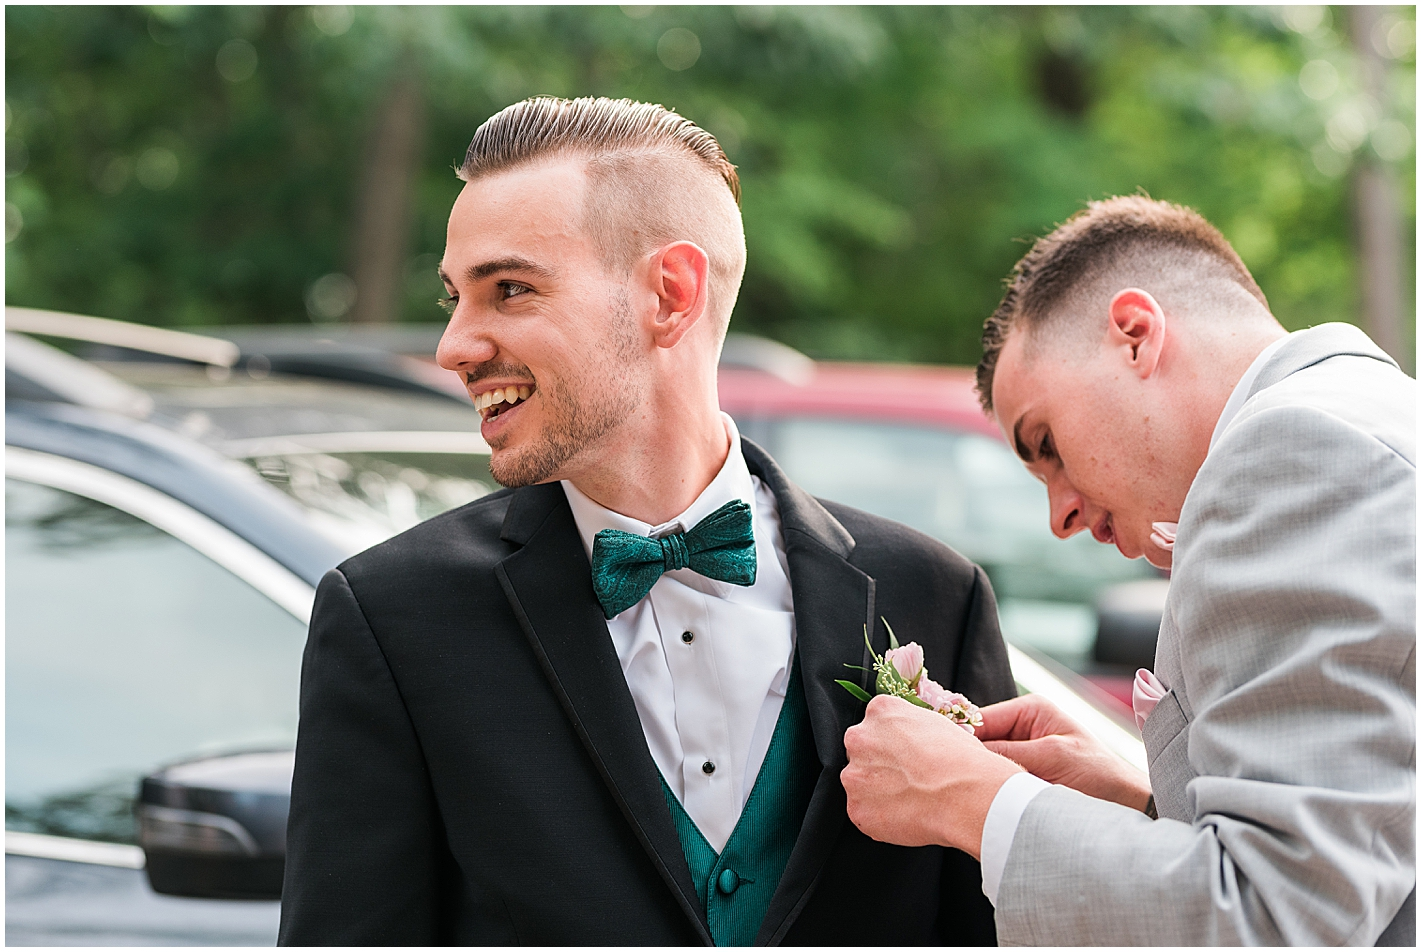 Groom Getting Ready Photo by Alyssa Parker Photography